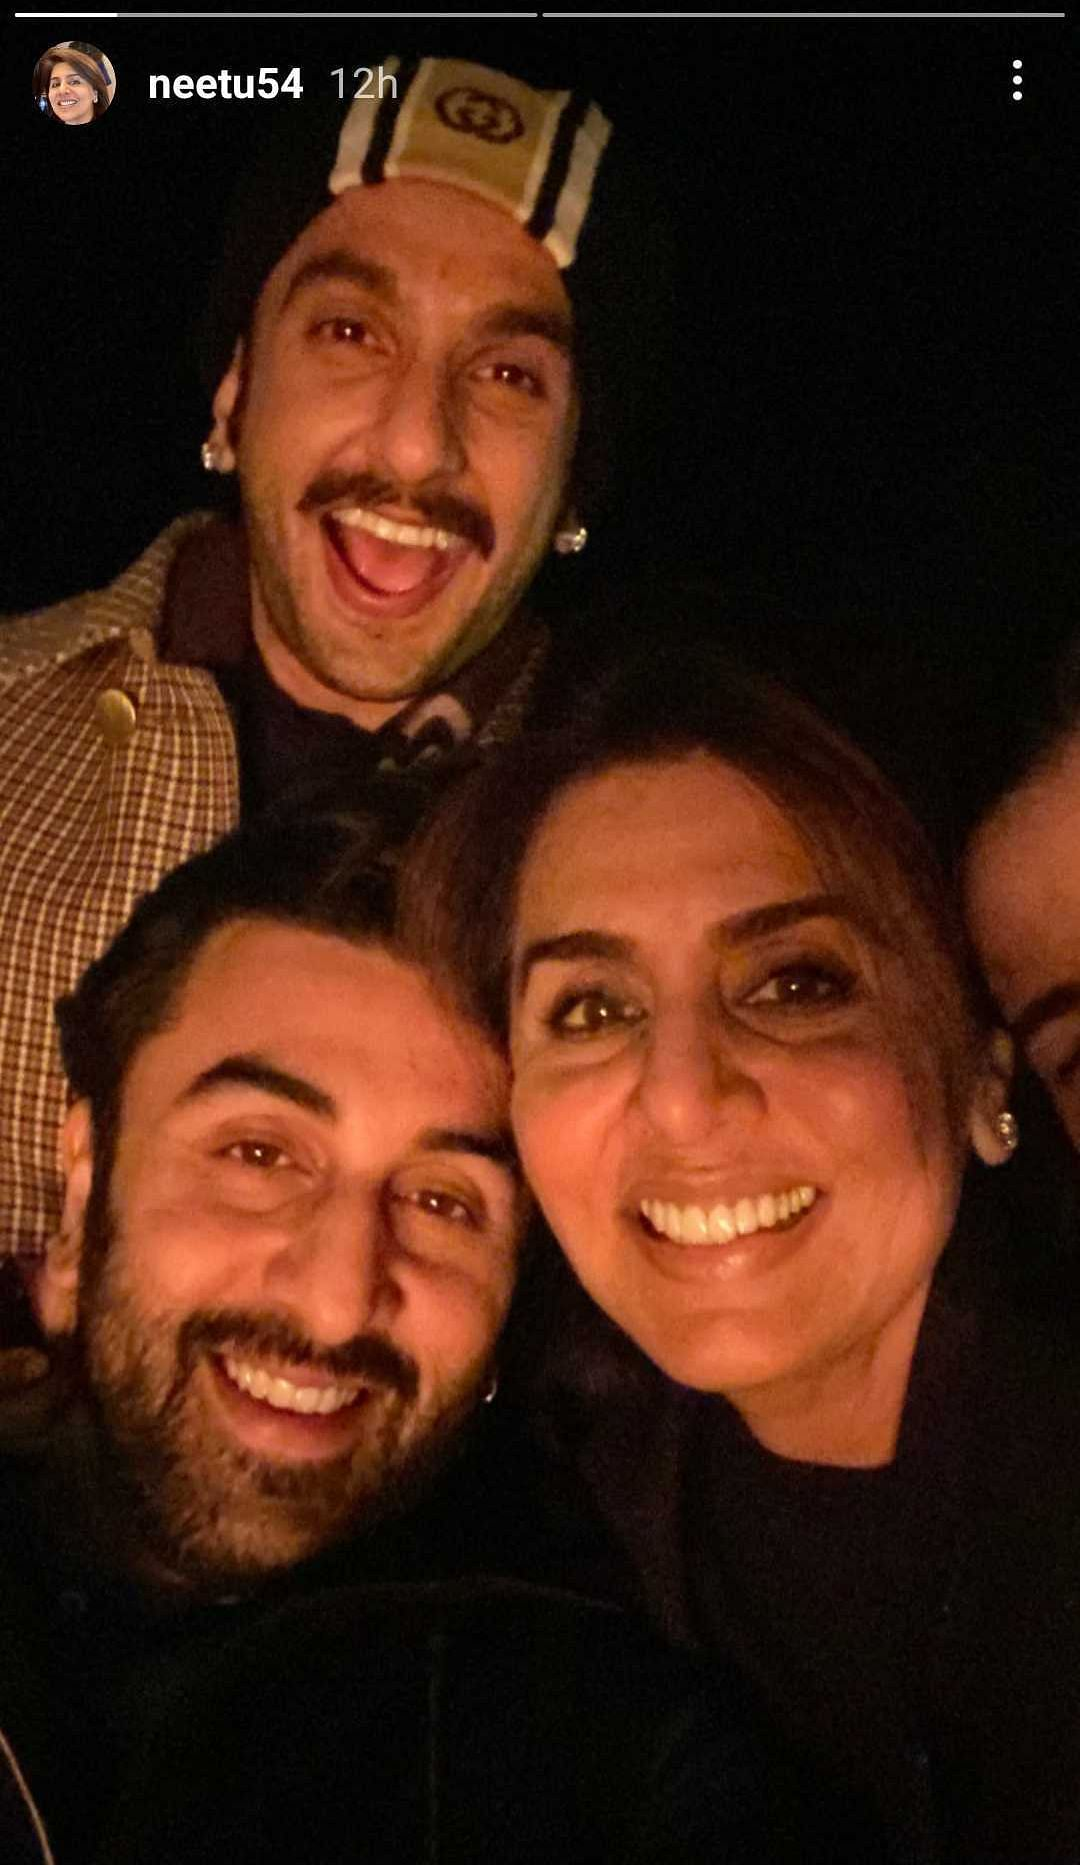 Ranveer-Deepika, Ranbir-Alia holiday together in Rajasthan ahead of New Year 2021